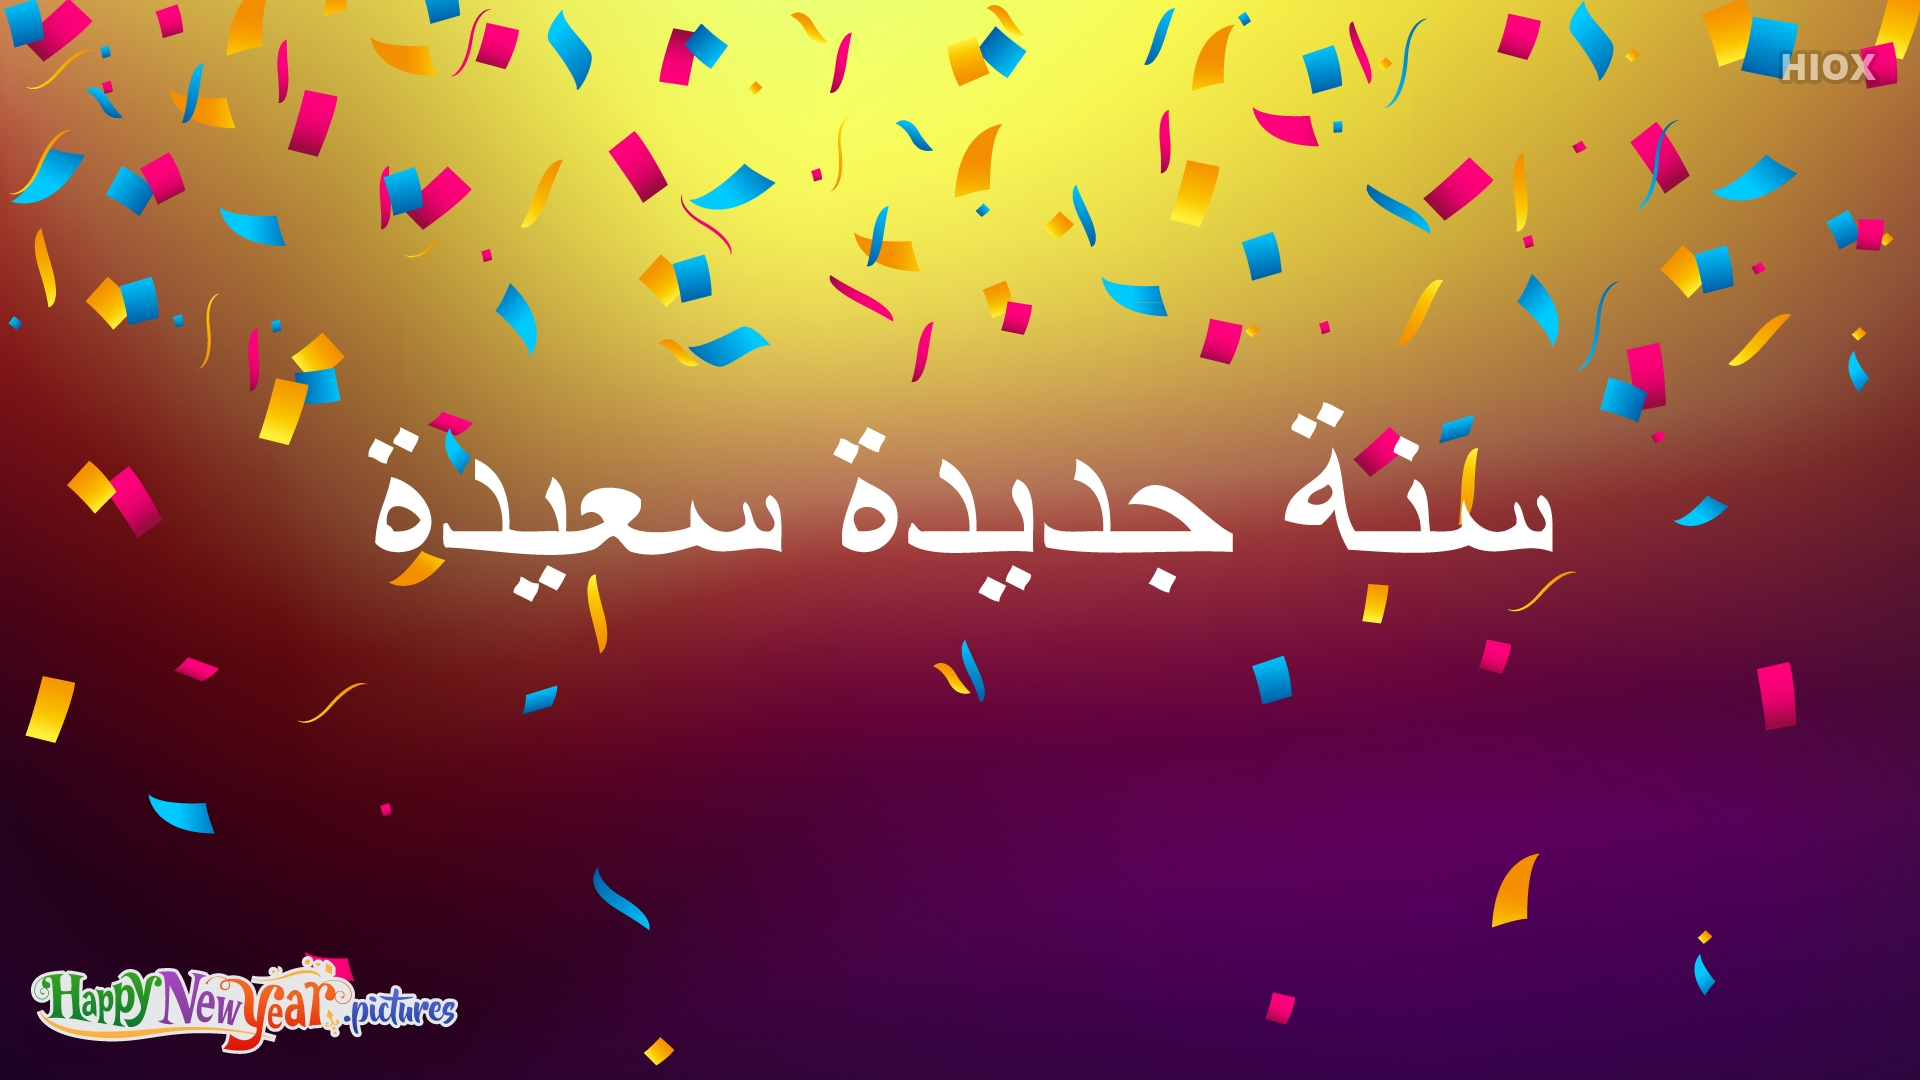 Cheerful Happy New Year Wishes In Arabic